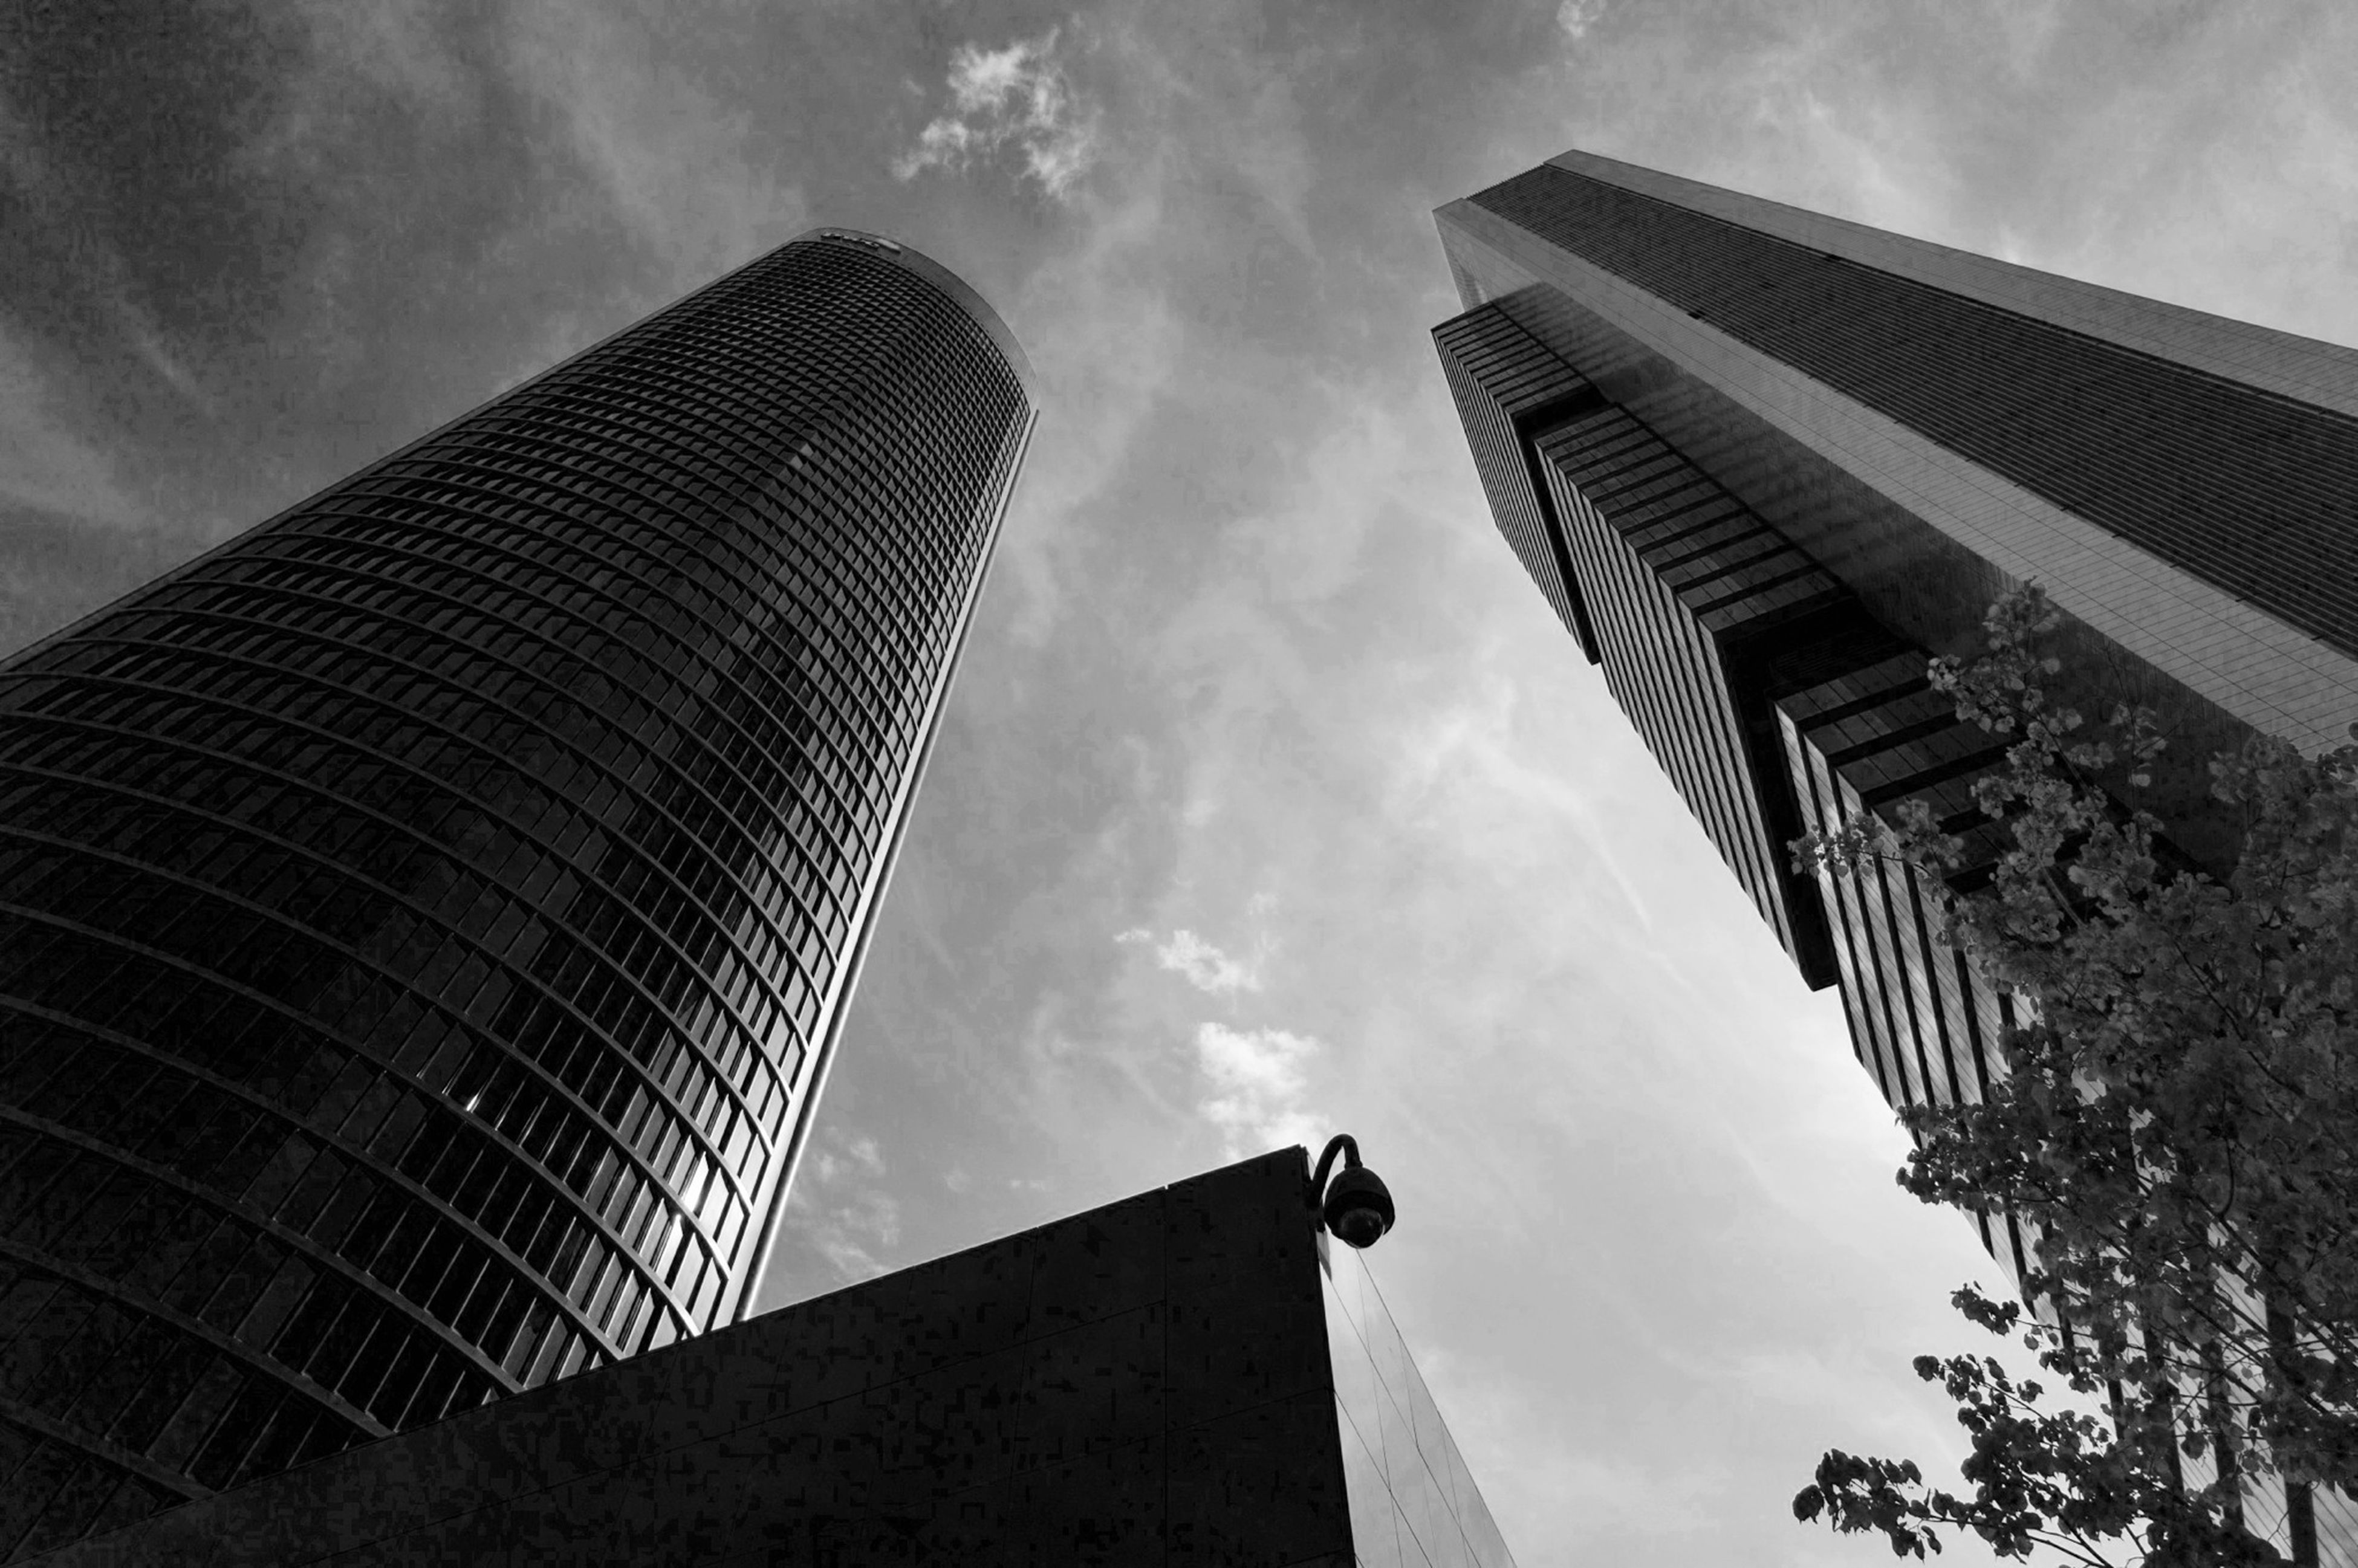 low angle view, architecture, built structure, building exterior, sky, tall - high, skyscraper, modern, city, tower, cloud - sky, office building, building, cloudy, cloud, outdoors, day, no people, capital cities, tall